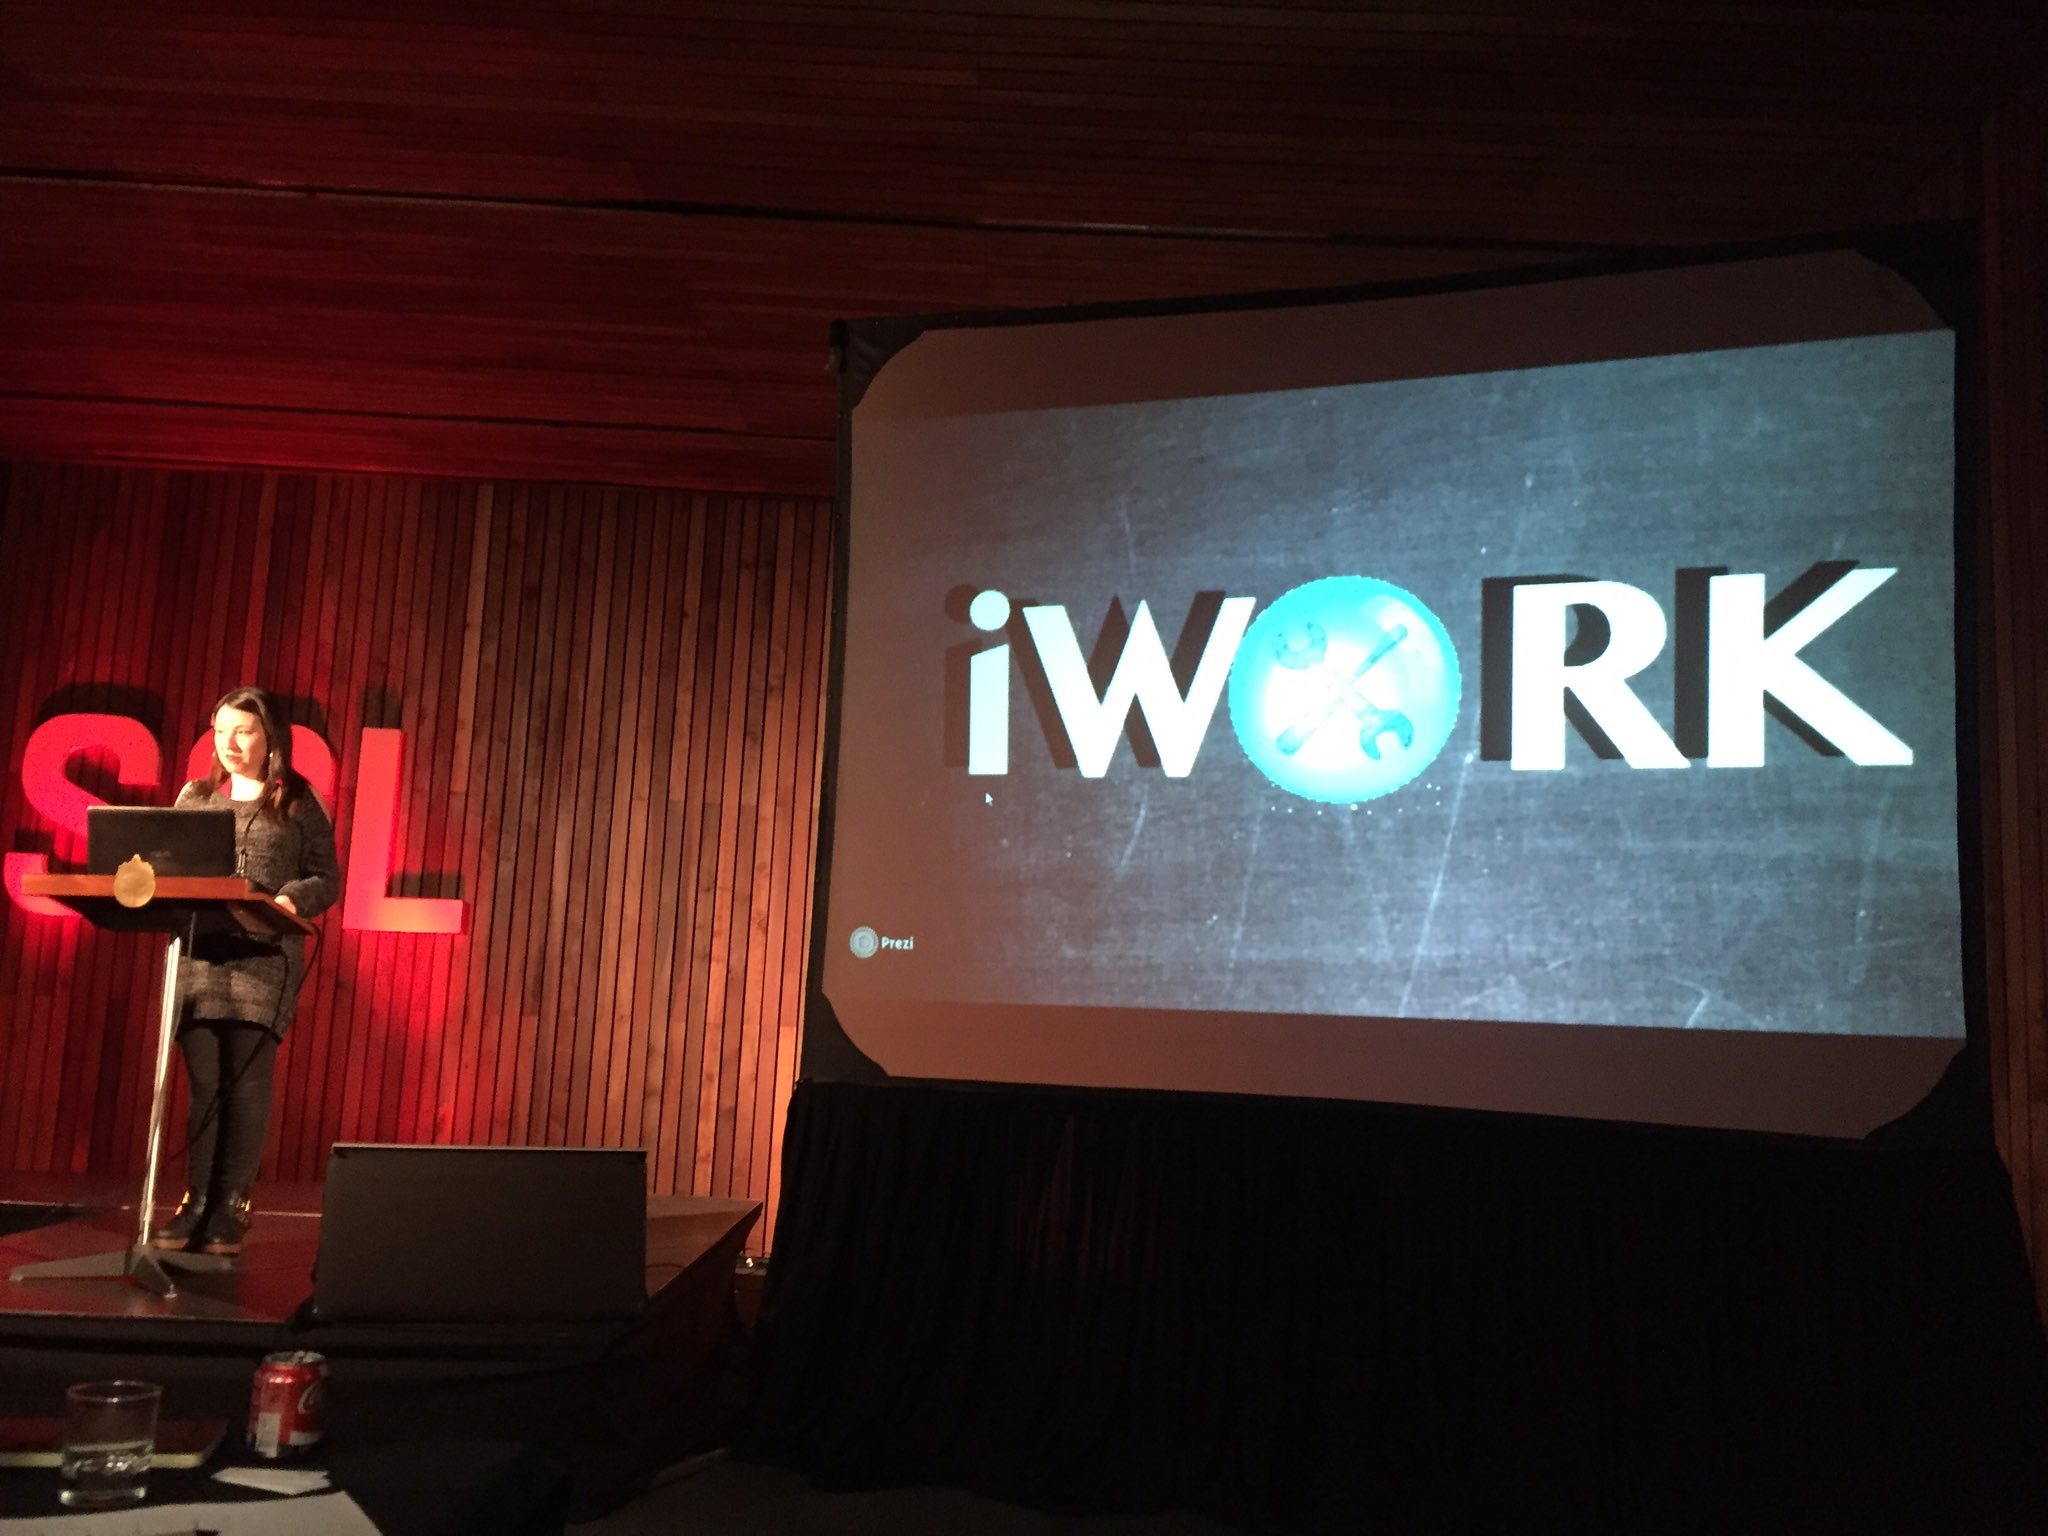 #iWork pitch: opportunities for workers #MaratonBigData @ucatolica https://t.co/fcwIiXSE2M